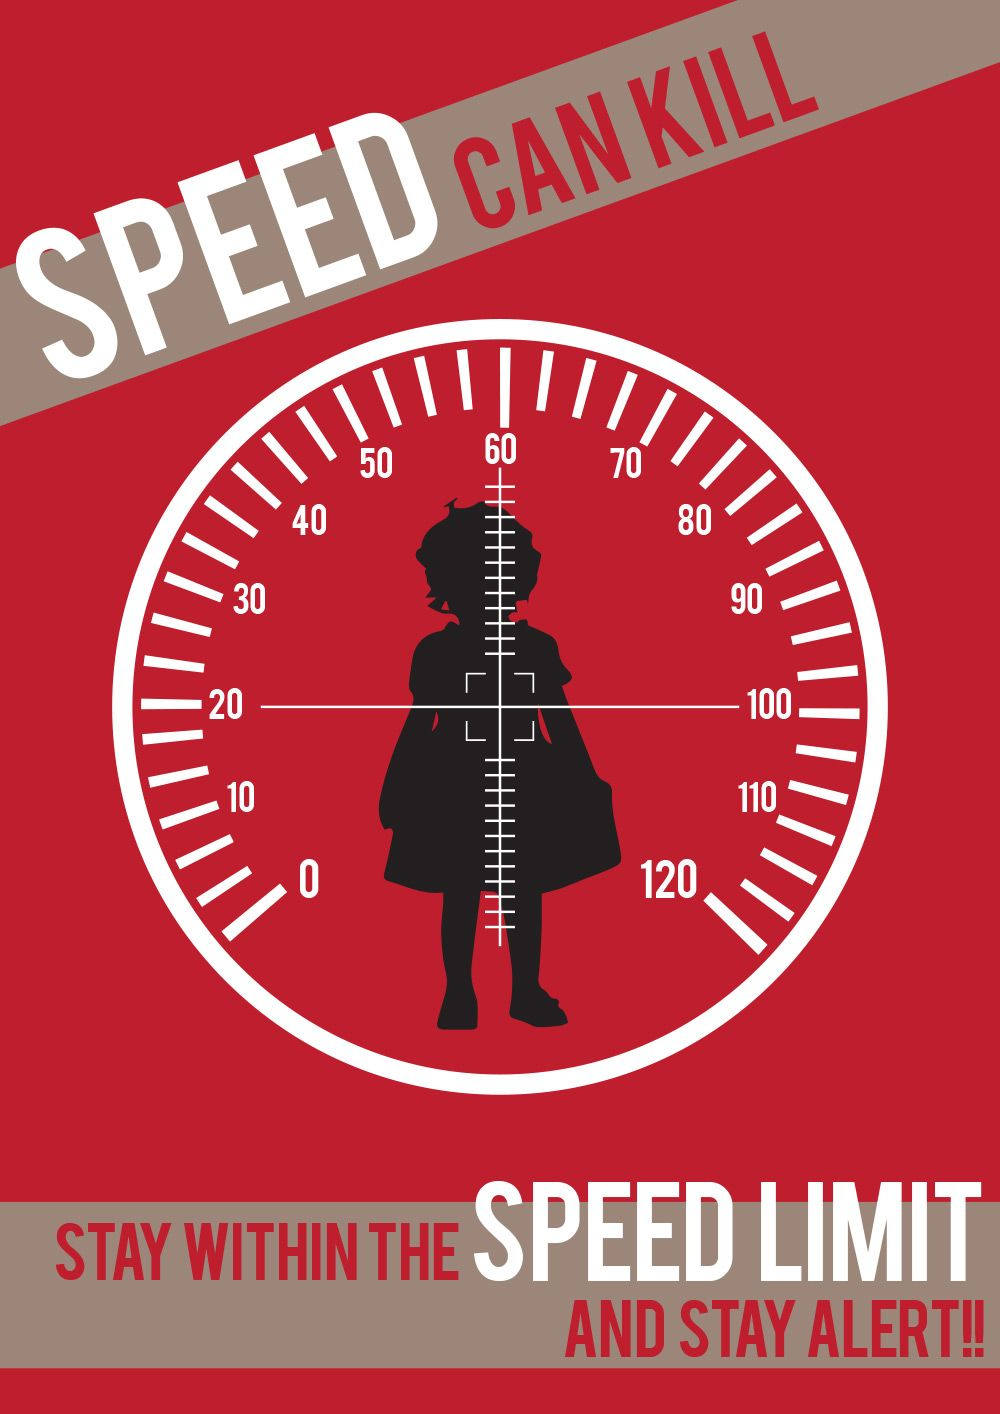 Check your speed. Road safety poster, Safety posters